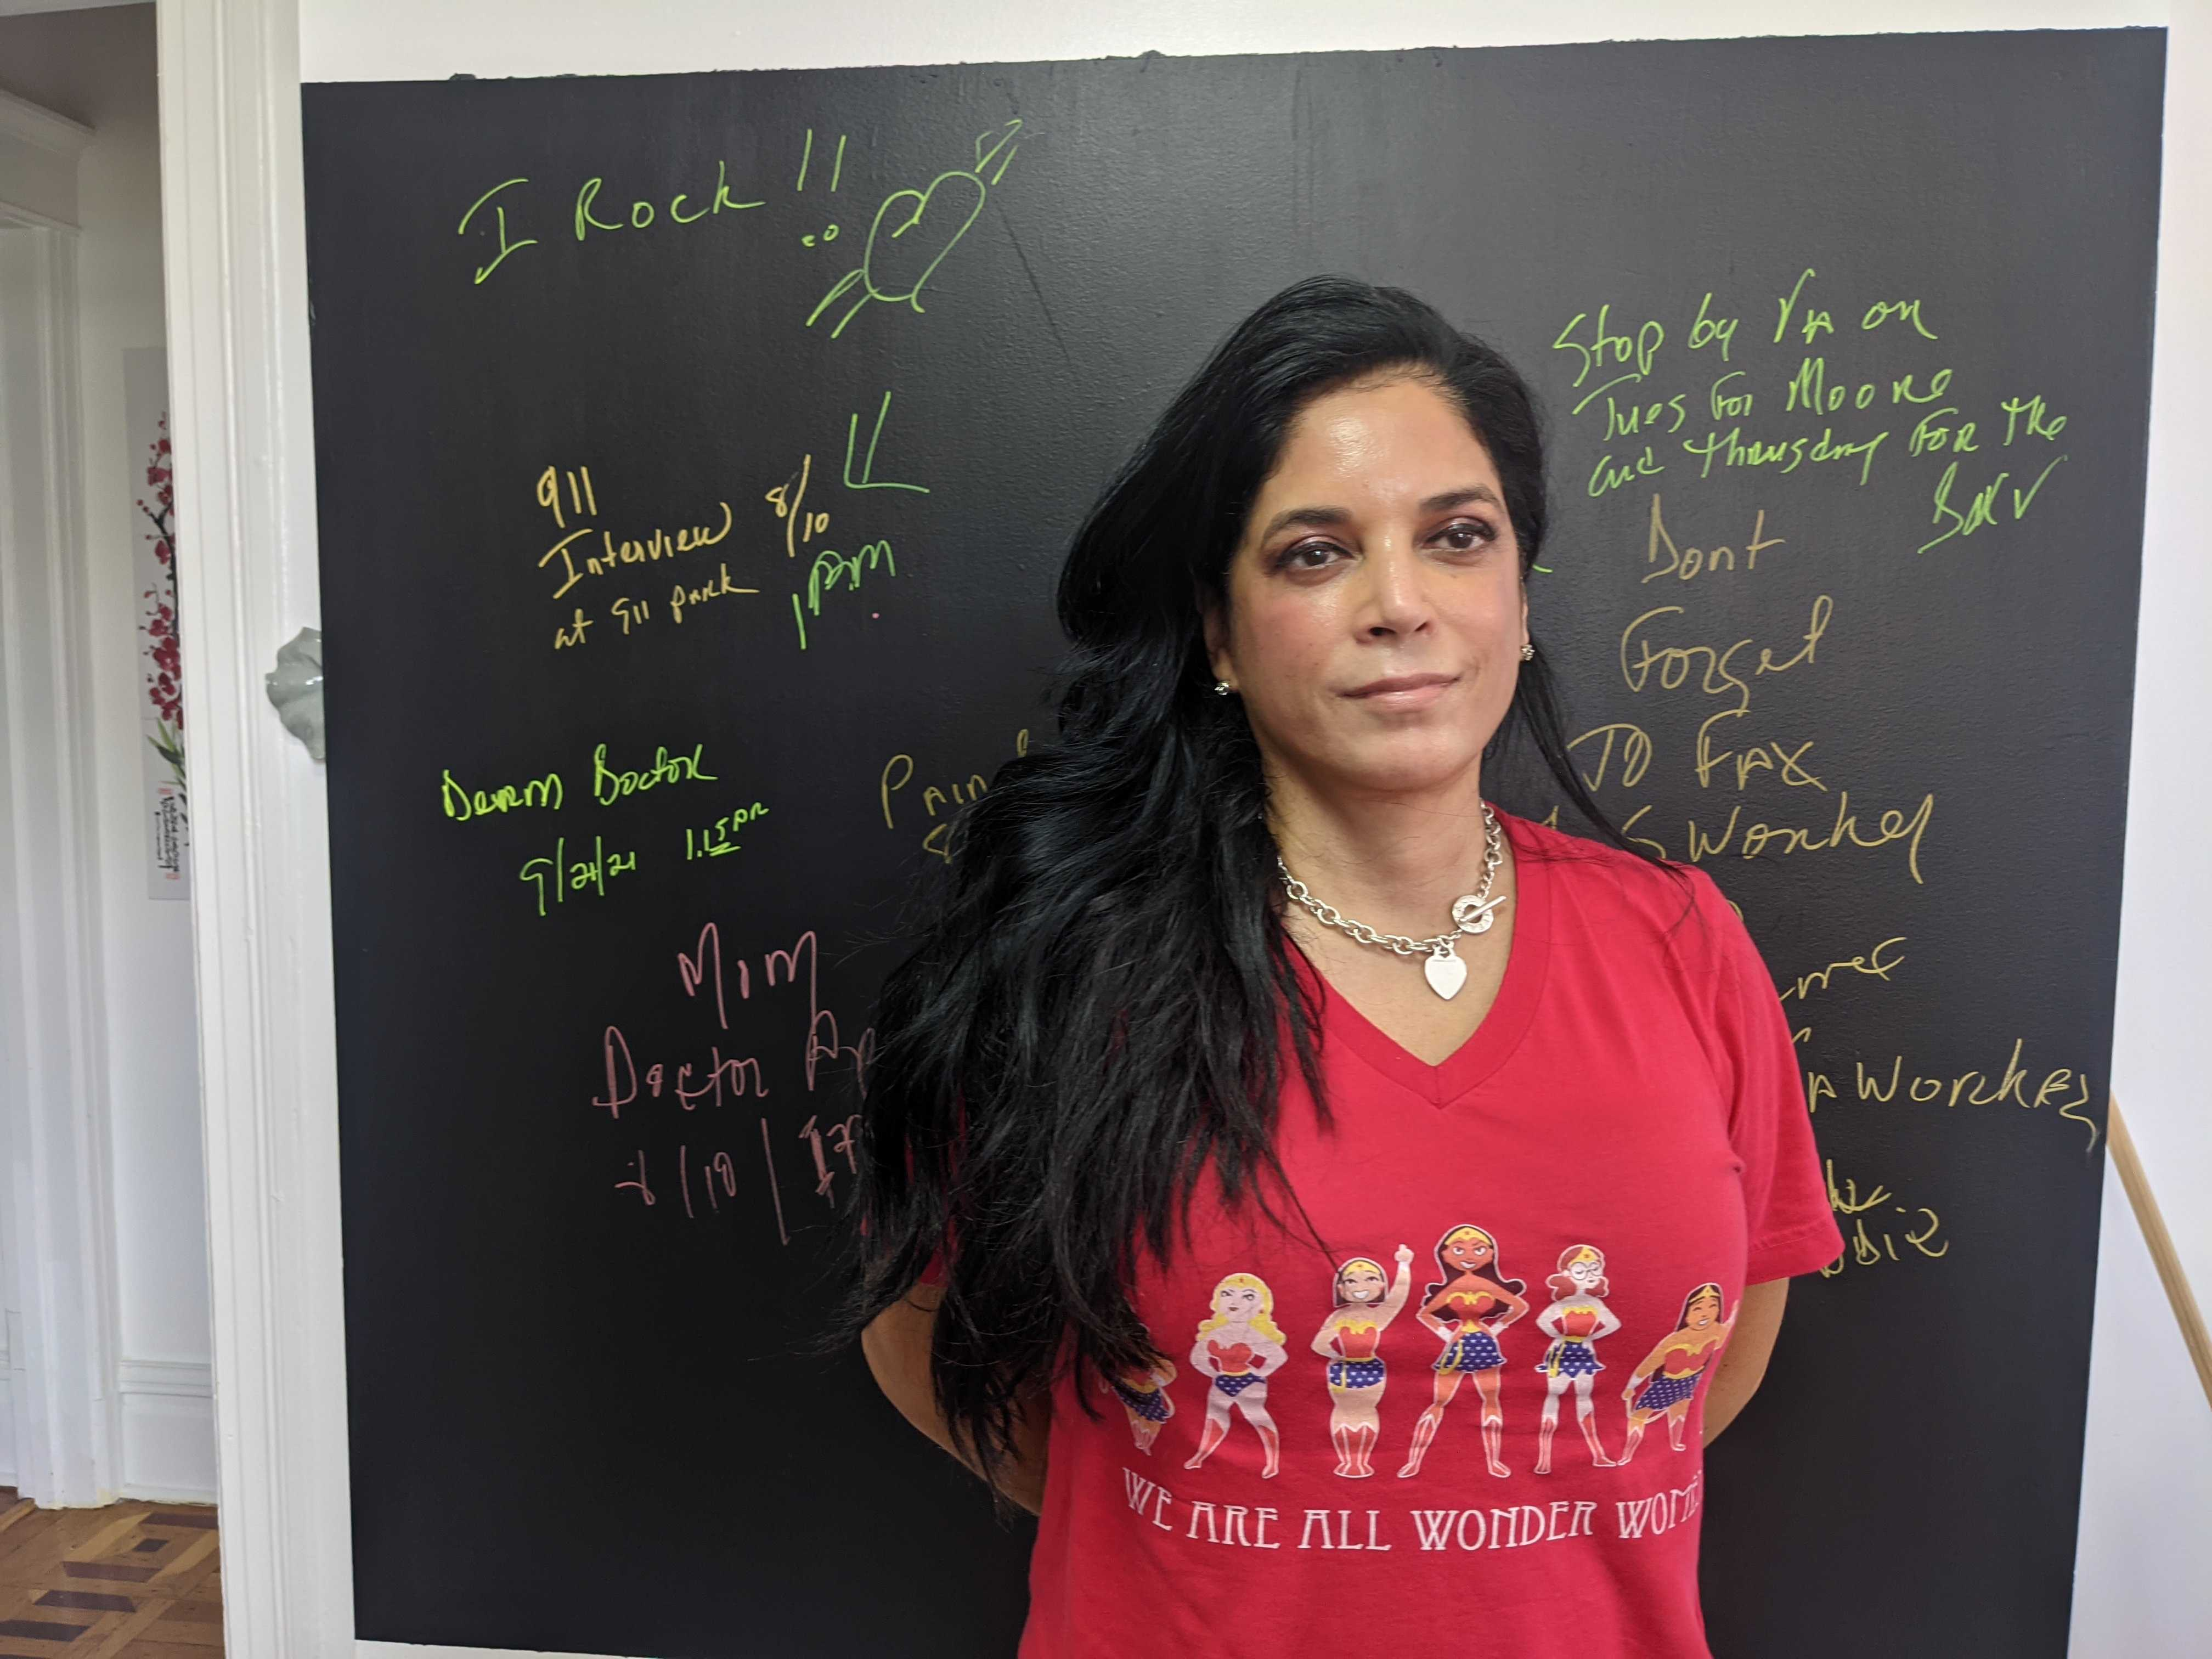 Ivonee Sanchez, in a red shirt, stands in front of a chalkboard